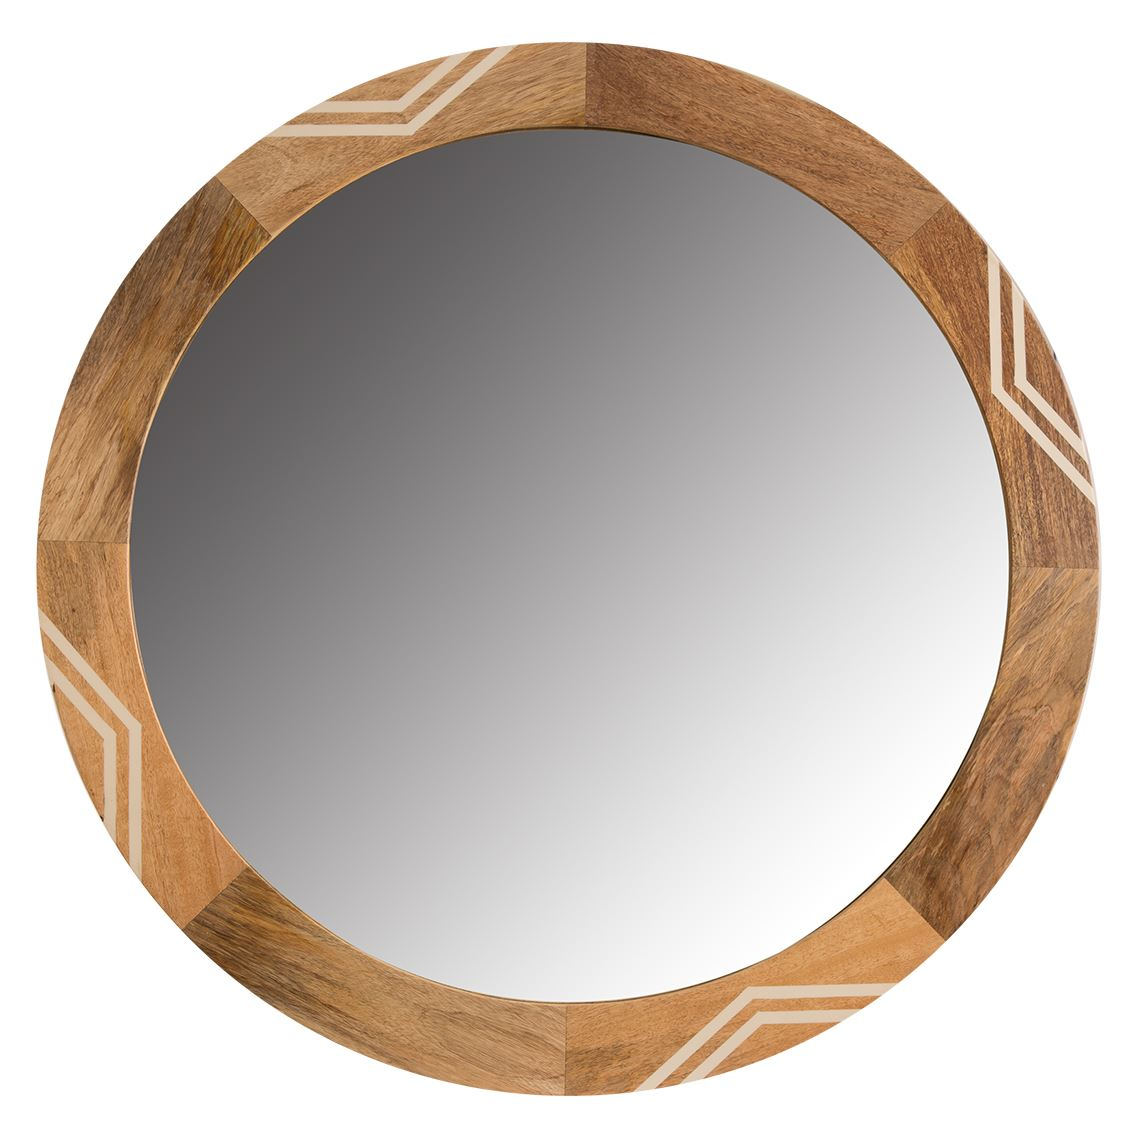 Isham Round Mirror Size W 90cm x D 4cm x H 90cm Timber/Mirrored Glass Freedom by Freedom, a Mirrors for sale on Style Sourcebook